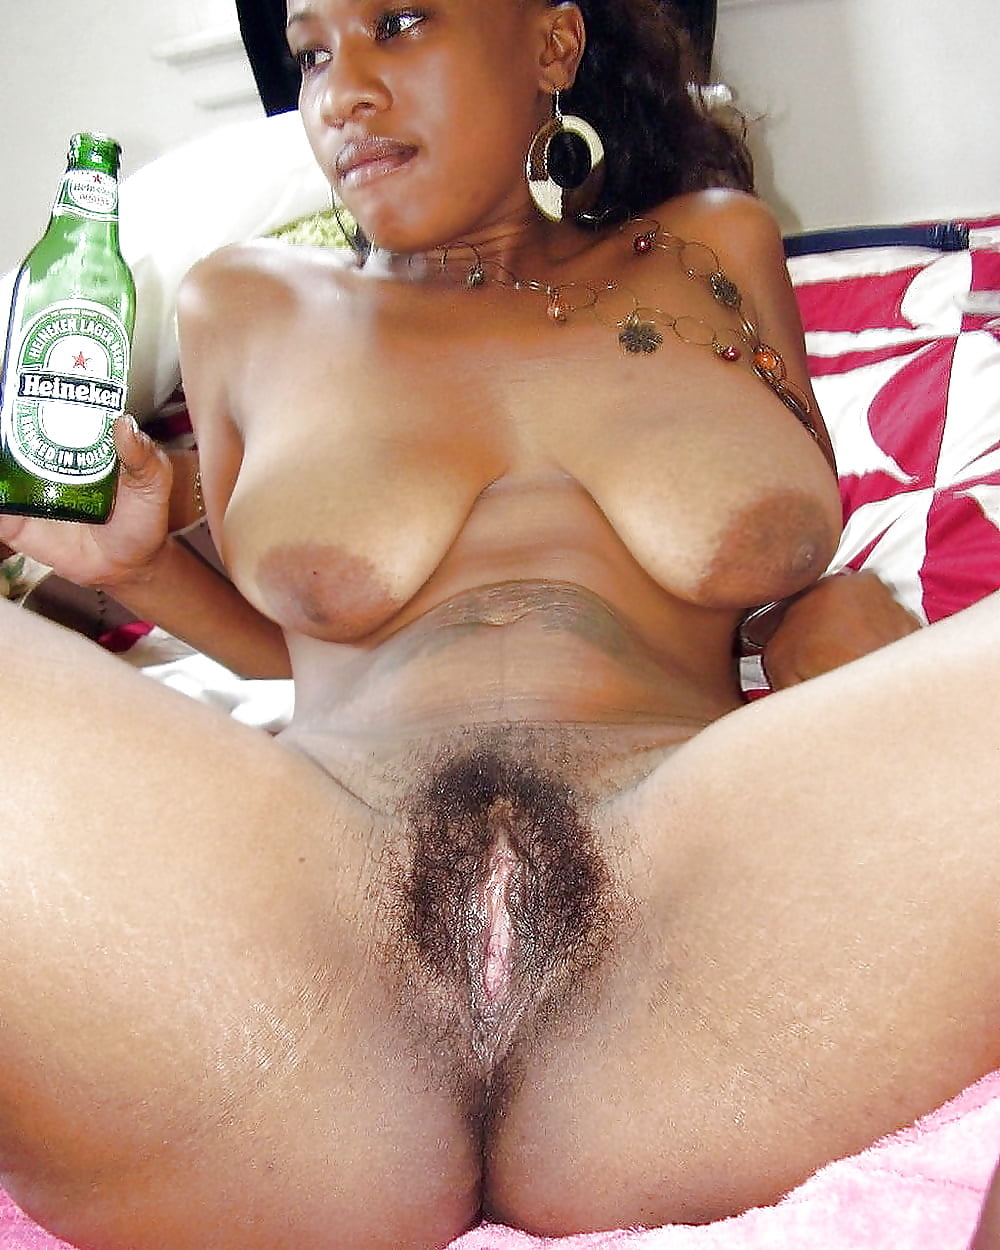 american-hairy-african-women-sex-picture